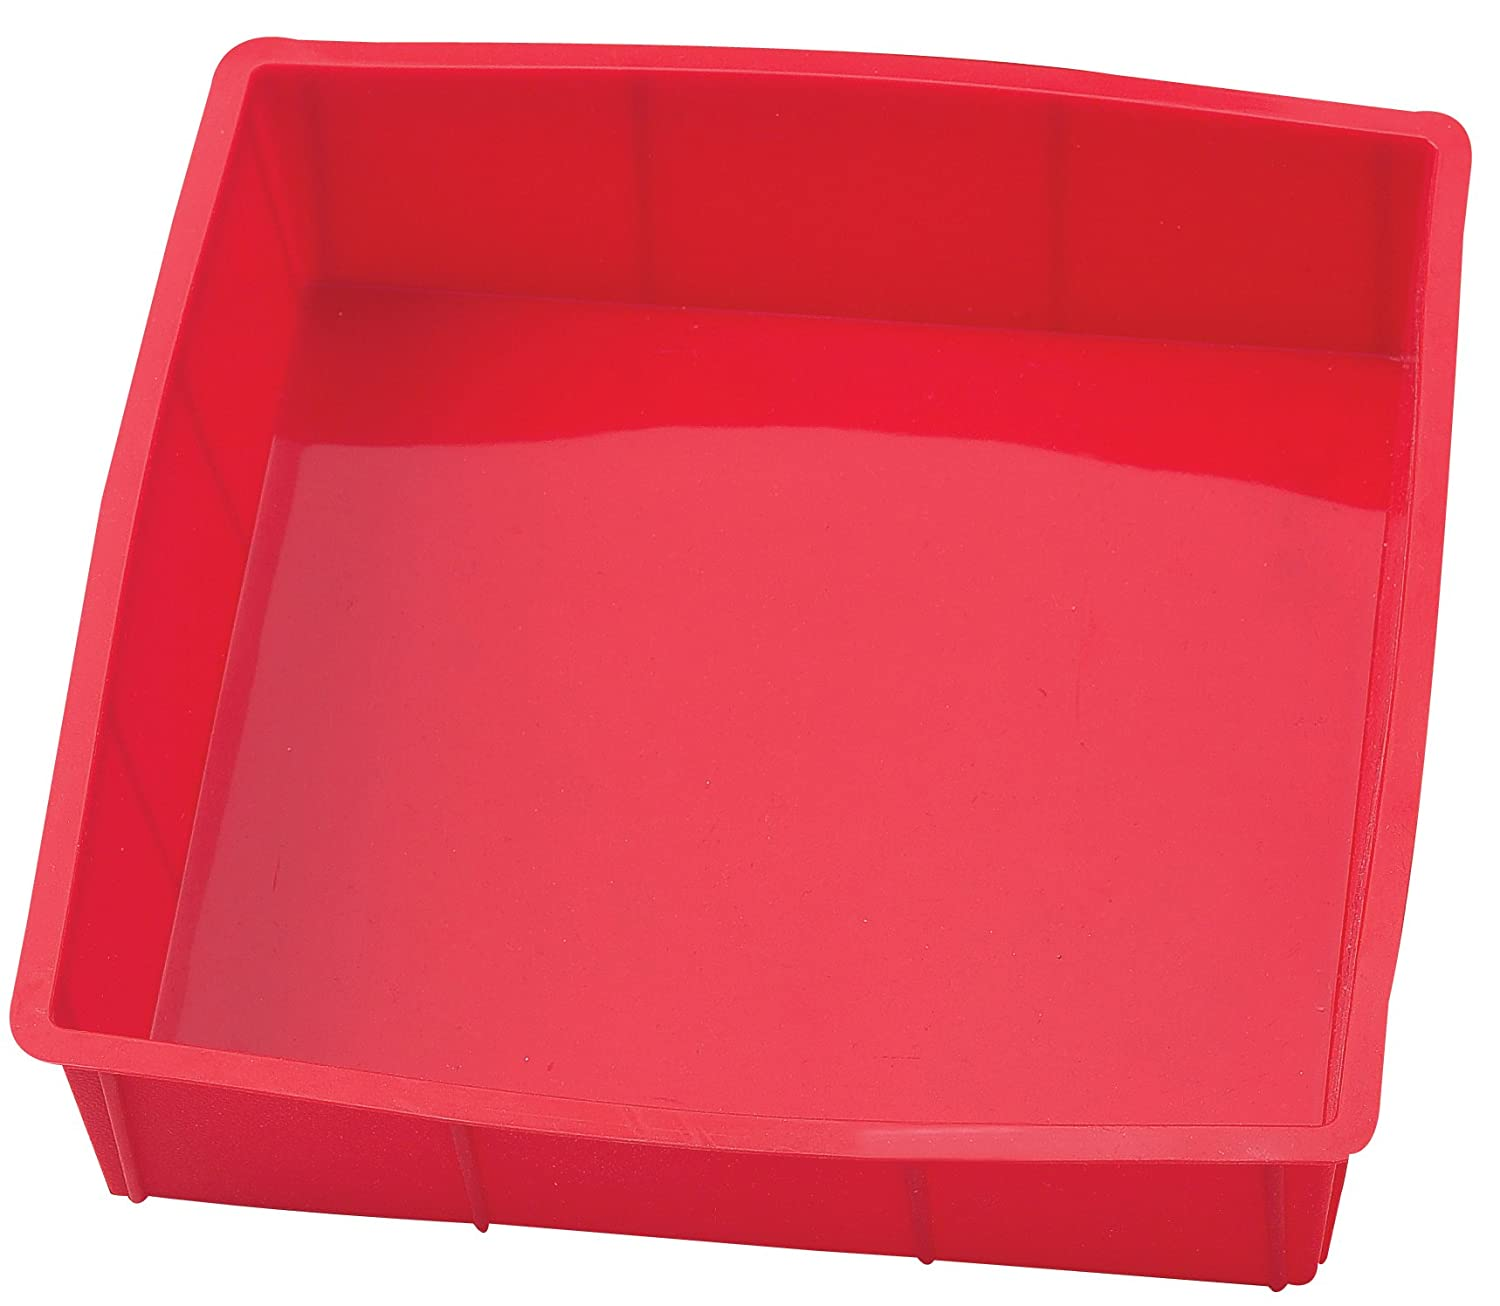 HIC Essentials Silicone Square Cake Pan, 9 by 9-Inch HIC Brands that Cook 43636